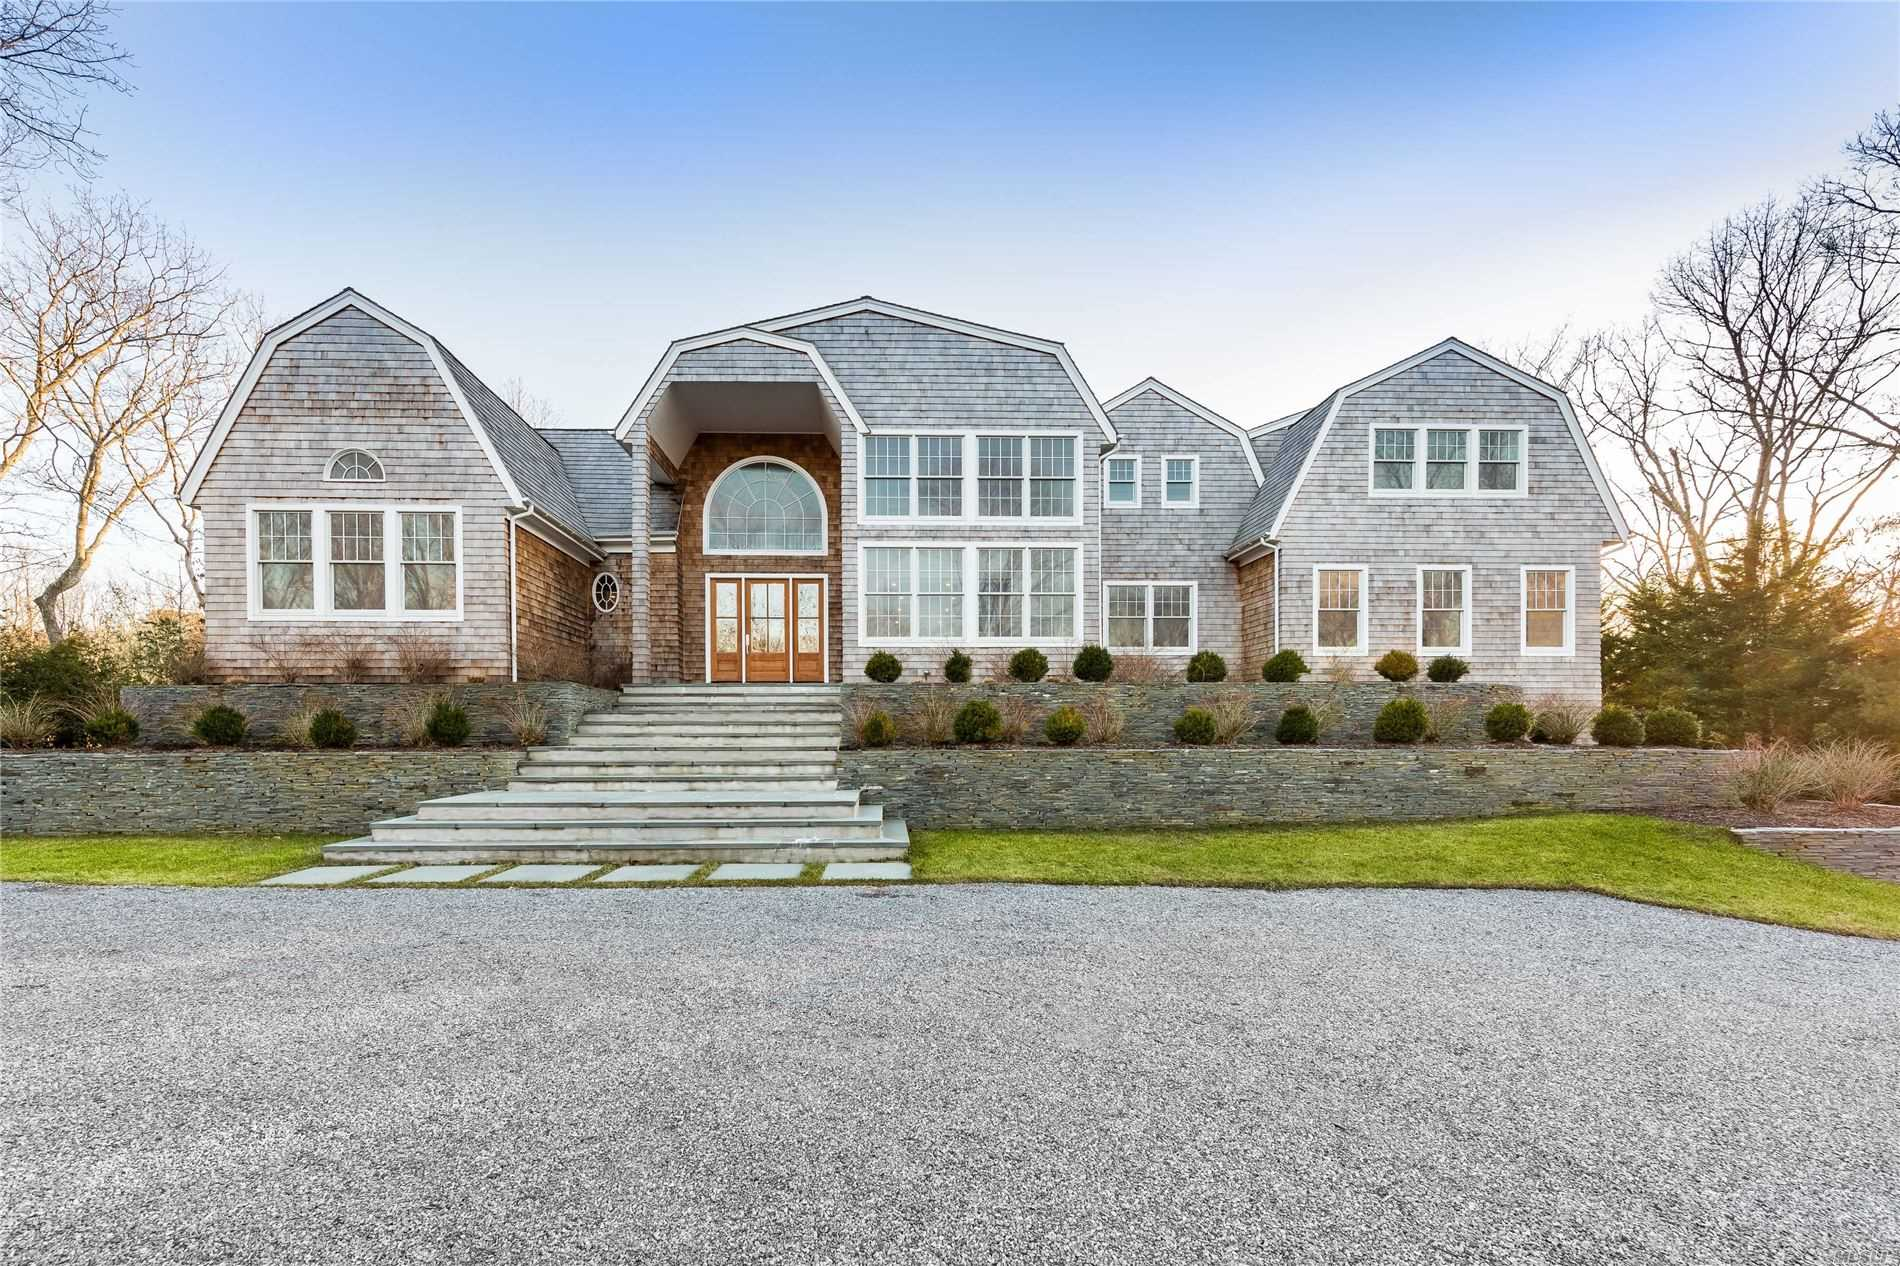 204 Roses Grove Rd - Water Mill, New York